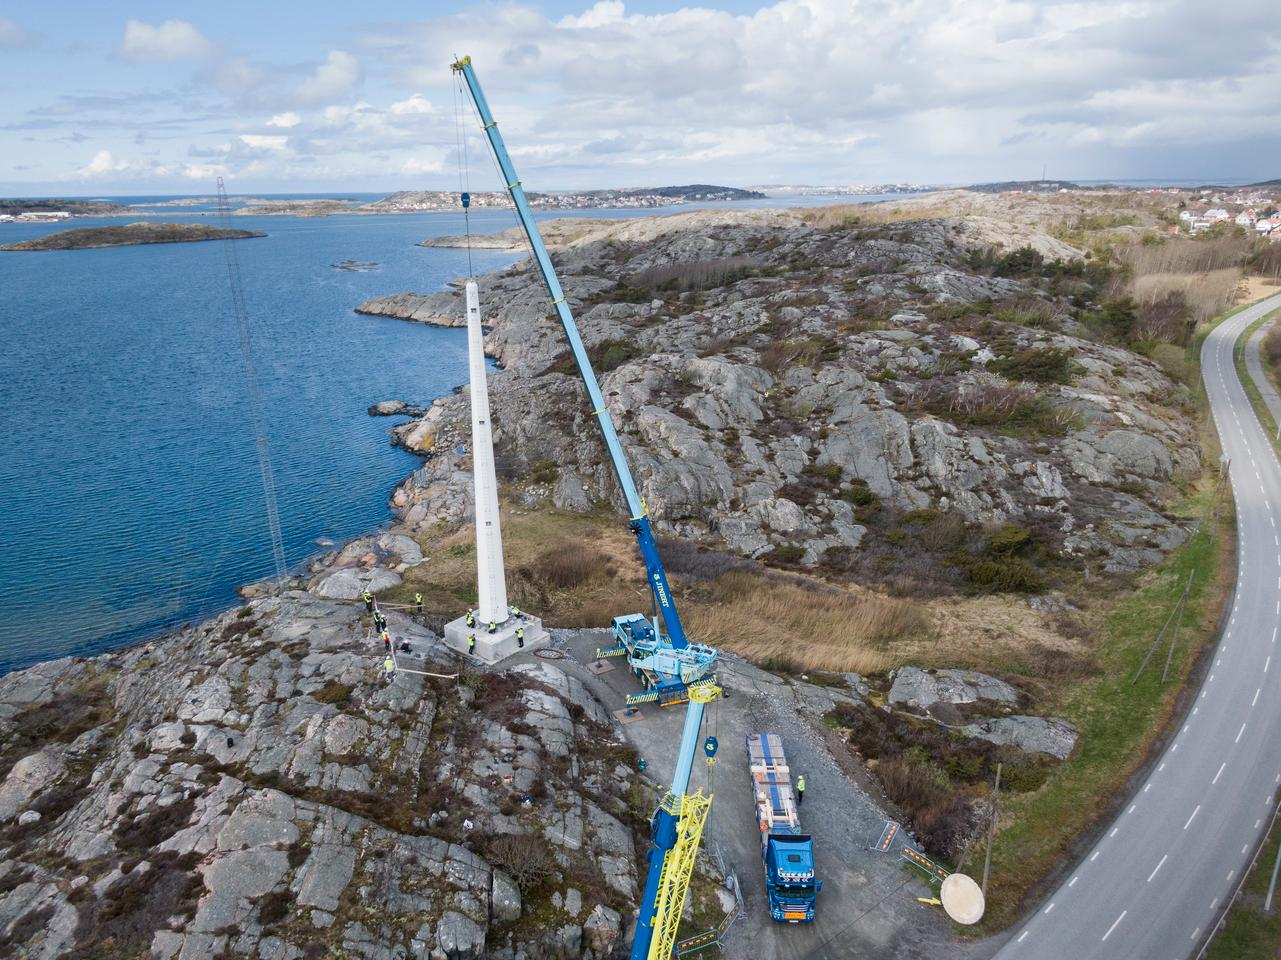 Sweden's first wooden wind power tower, standing 30 m high, has been erected outside Gothenburg